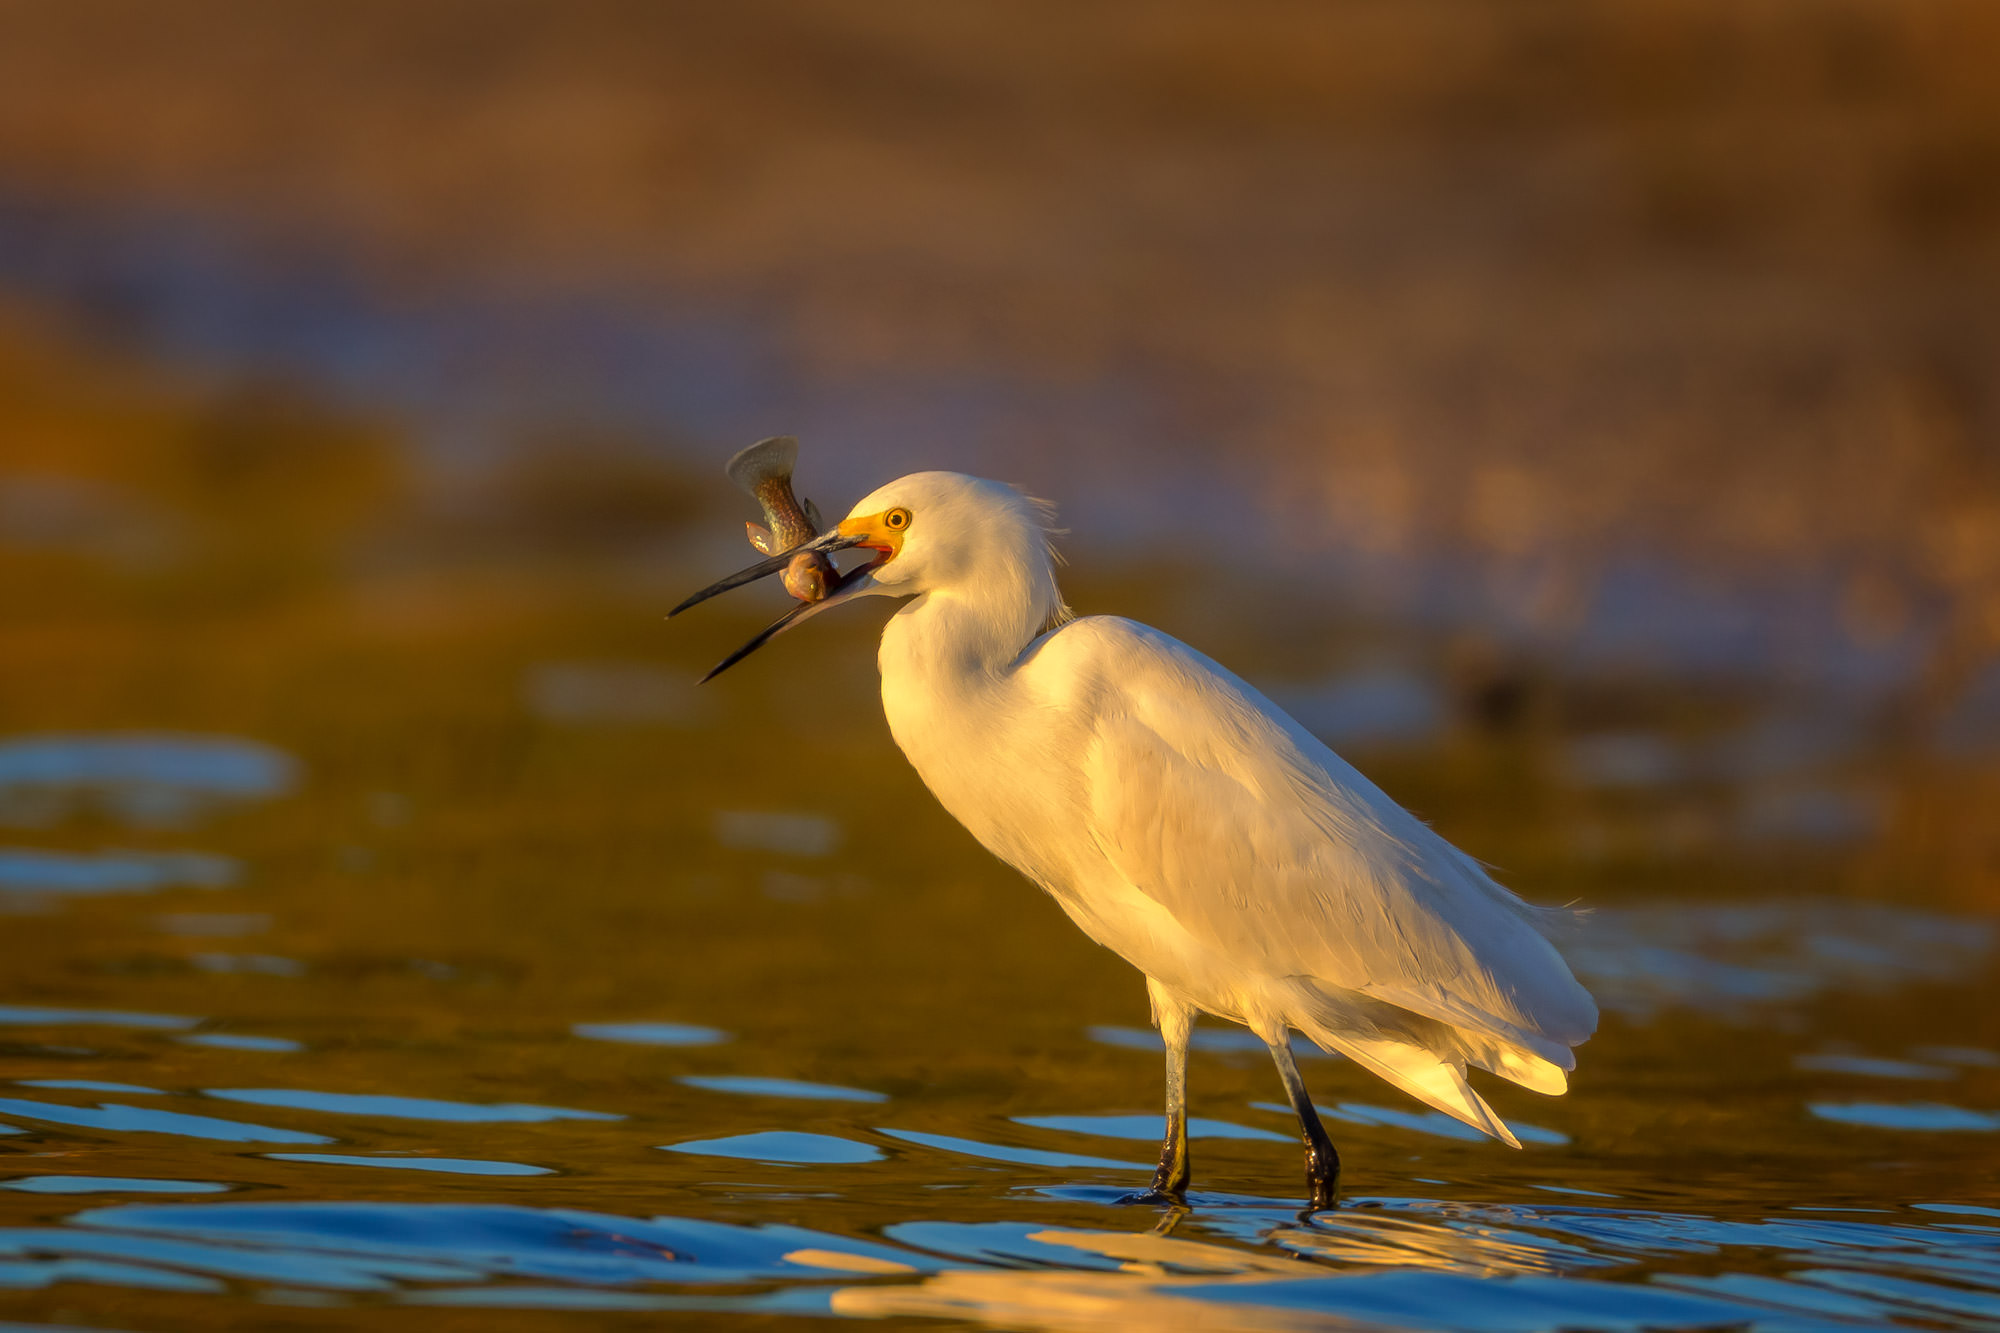 Egret, Snowy Egret, Florida, limited edition, photograph, fine art, wildlife, photo